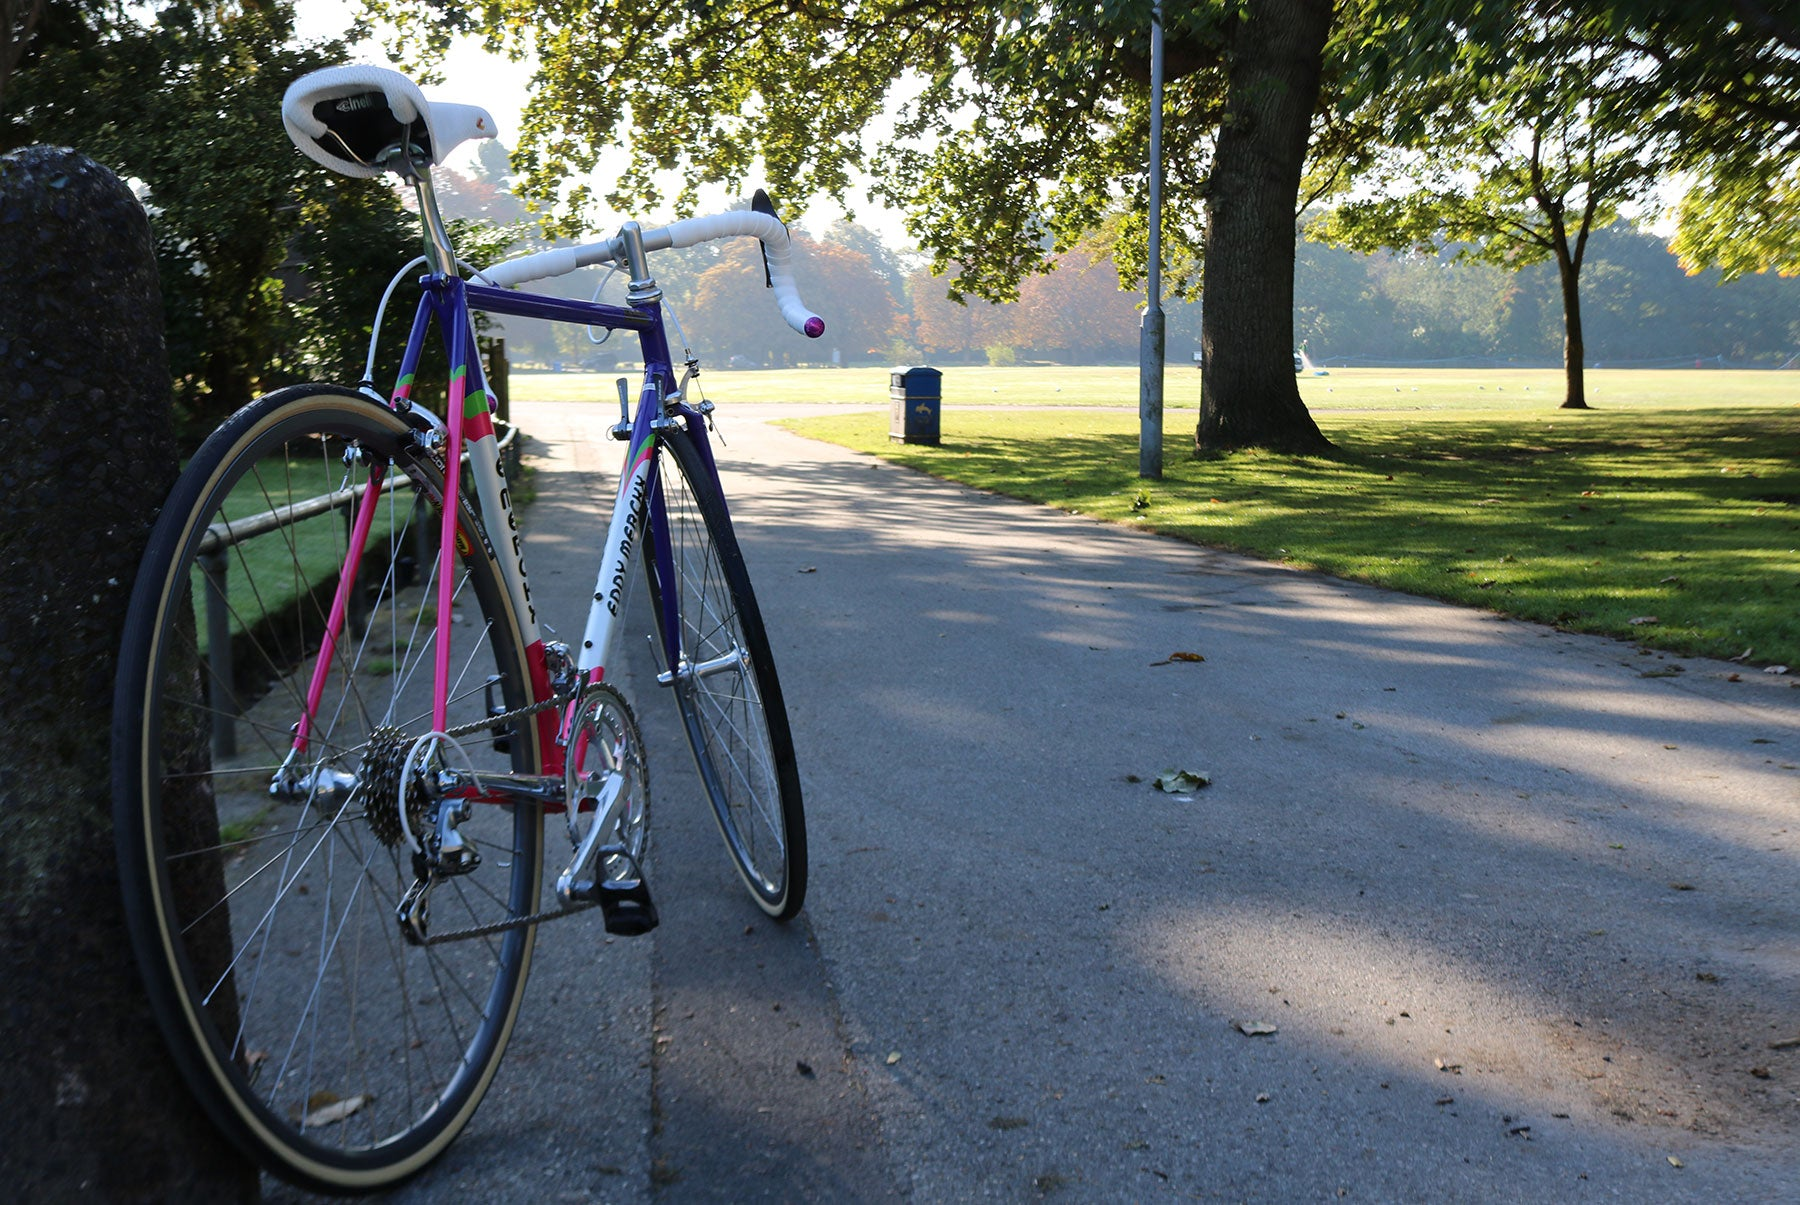 Eddy Merckx Corsa Extra SLX frame in Team Weinmann colours at Poole Park's cricket pitch.